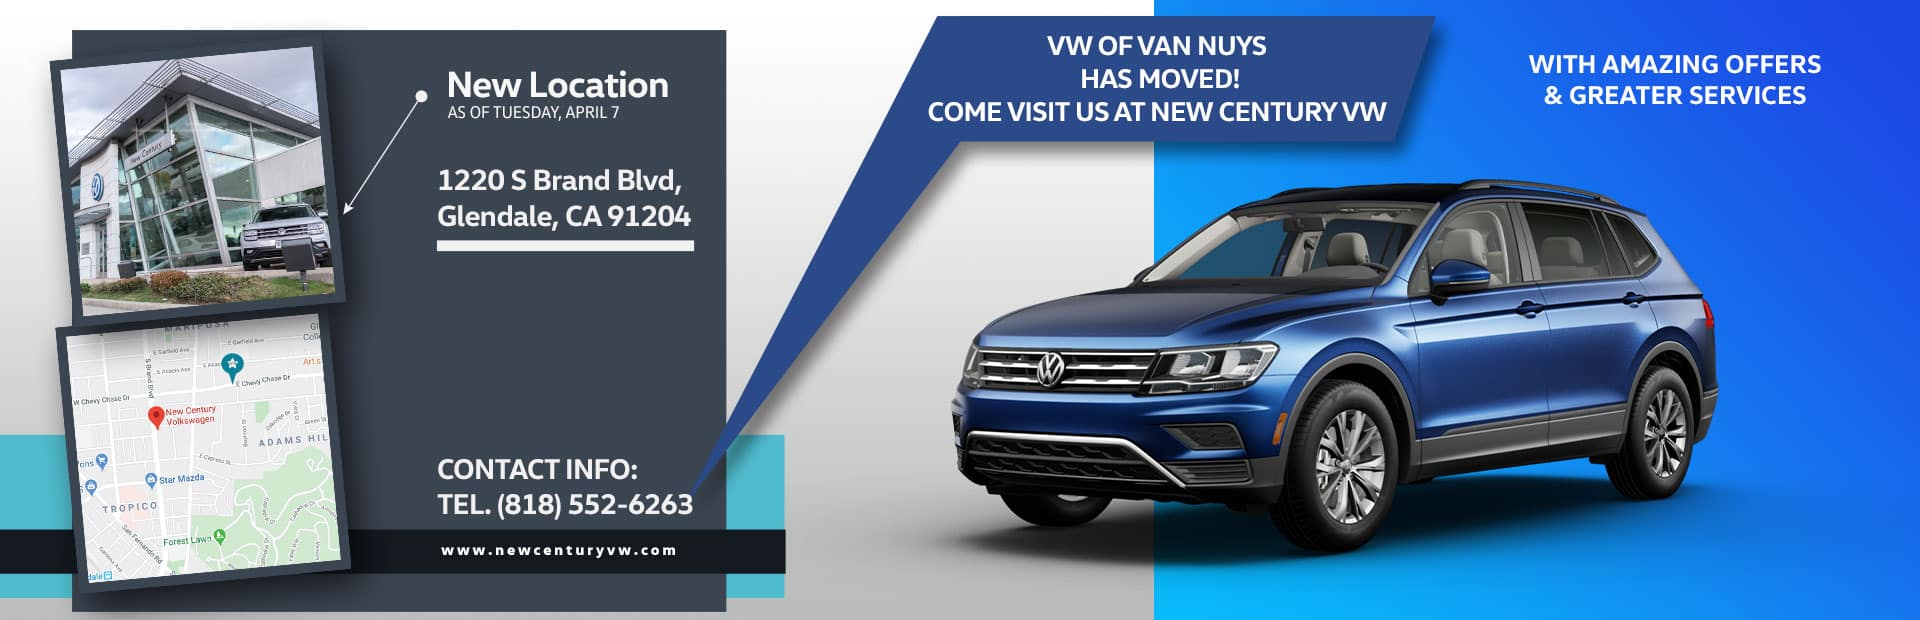 vw of van nuys is now moved to New Century VW